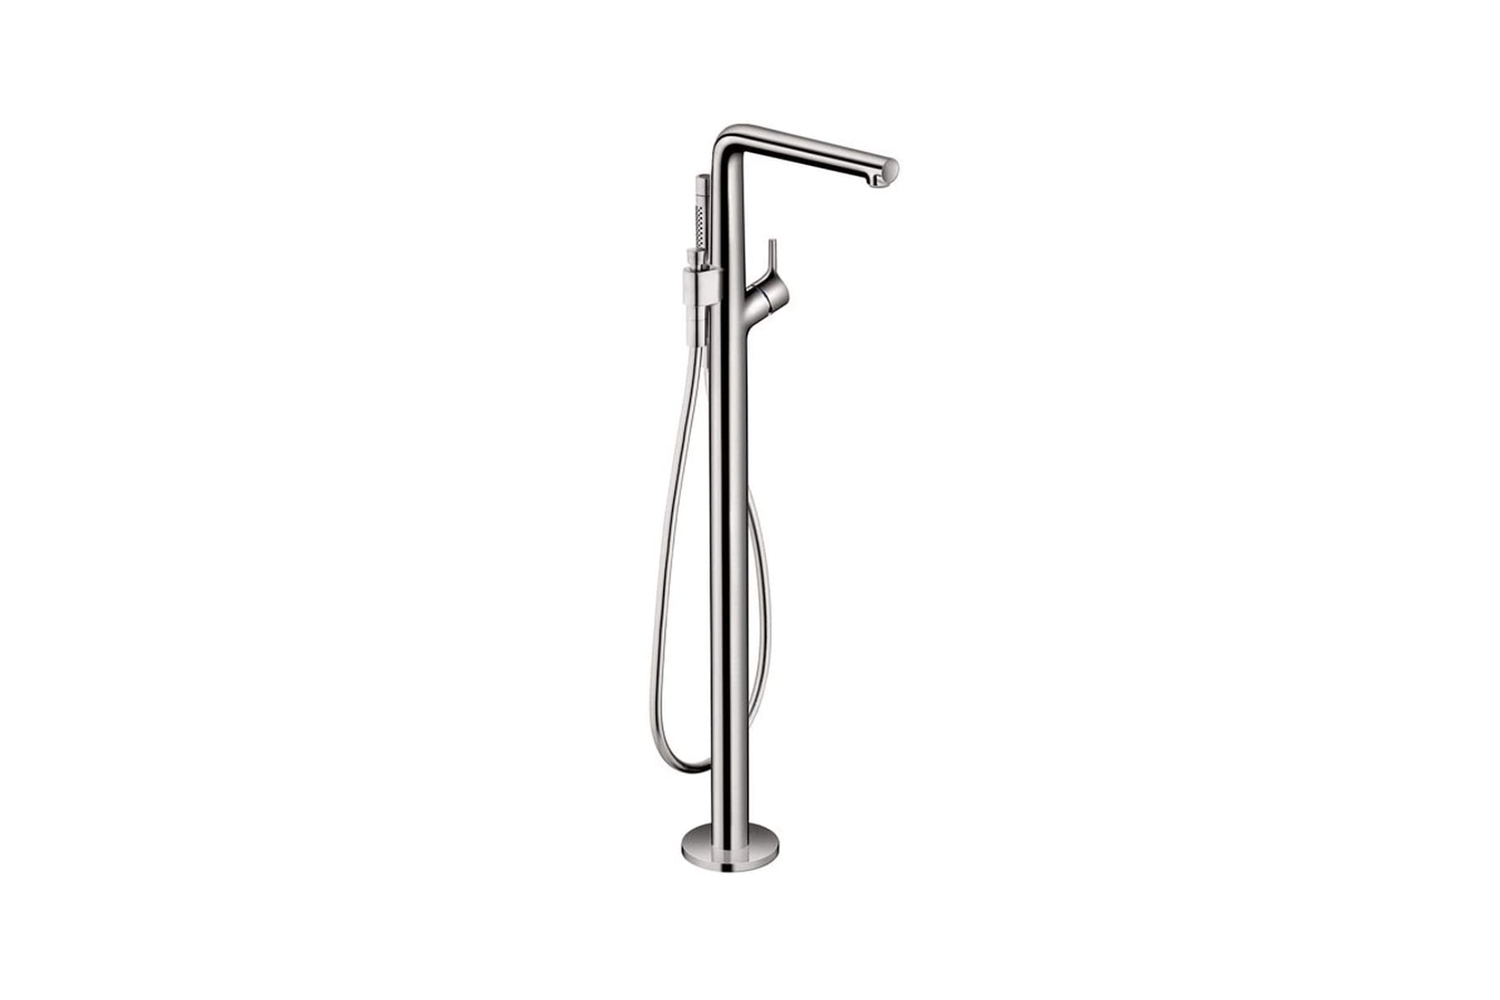 the hansgrohe freestanding bathtub faucet (7\24\1300\1) is \$609.70 on amazon. 11